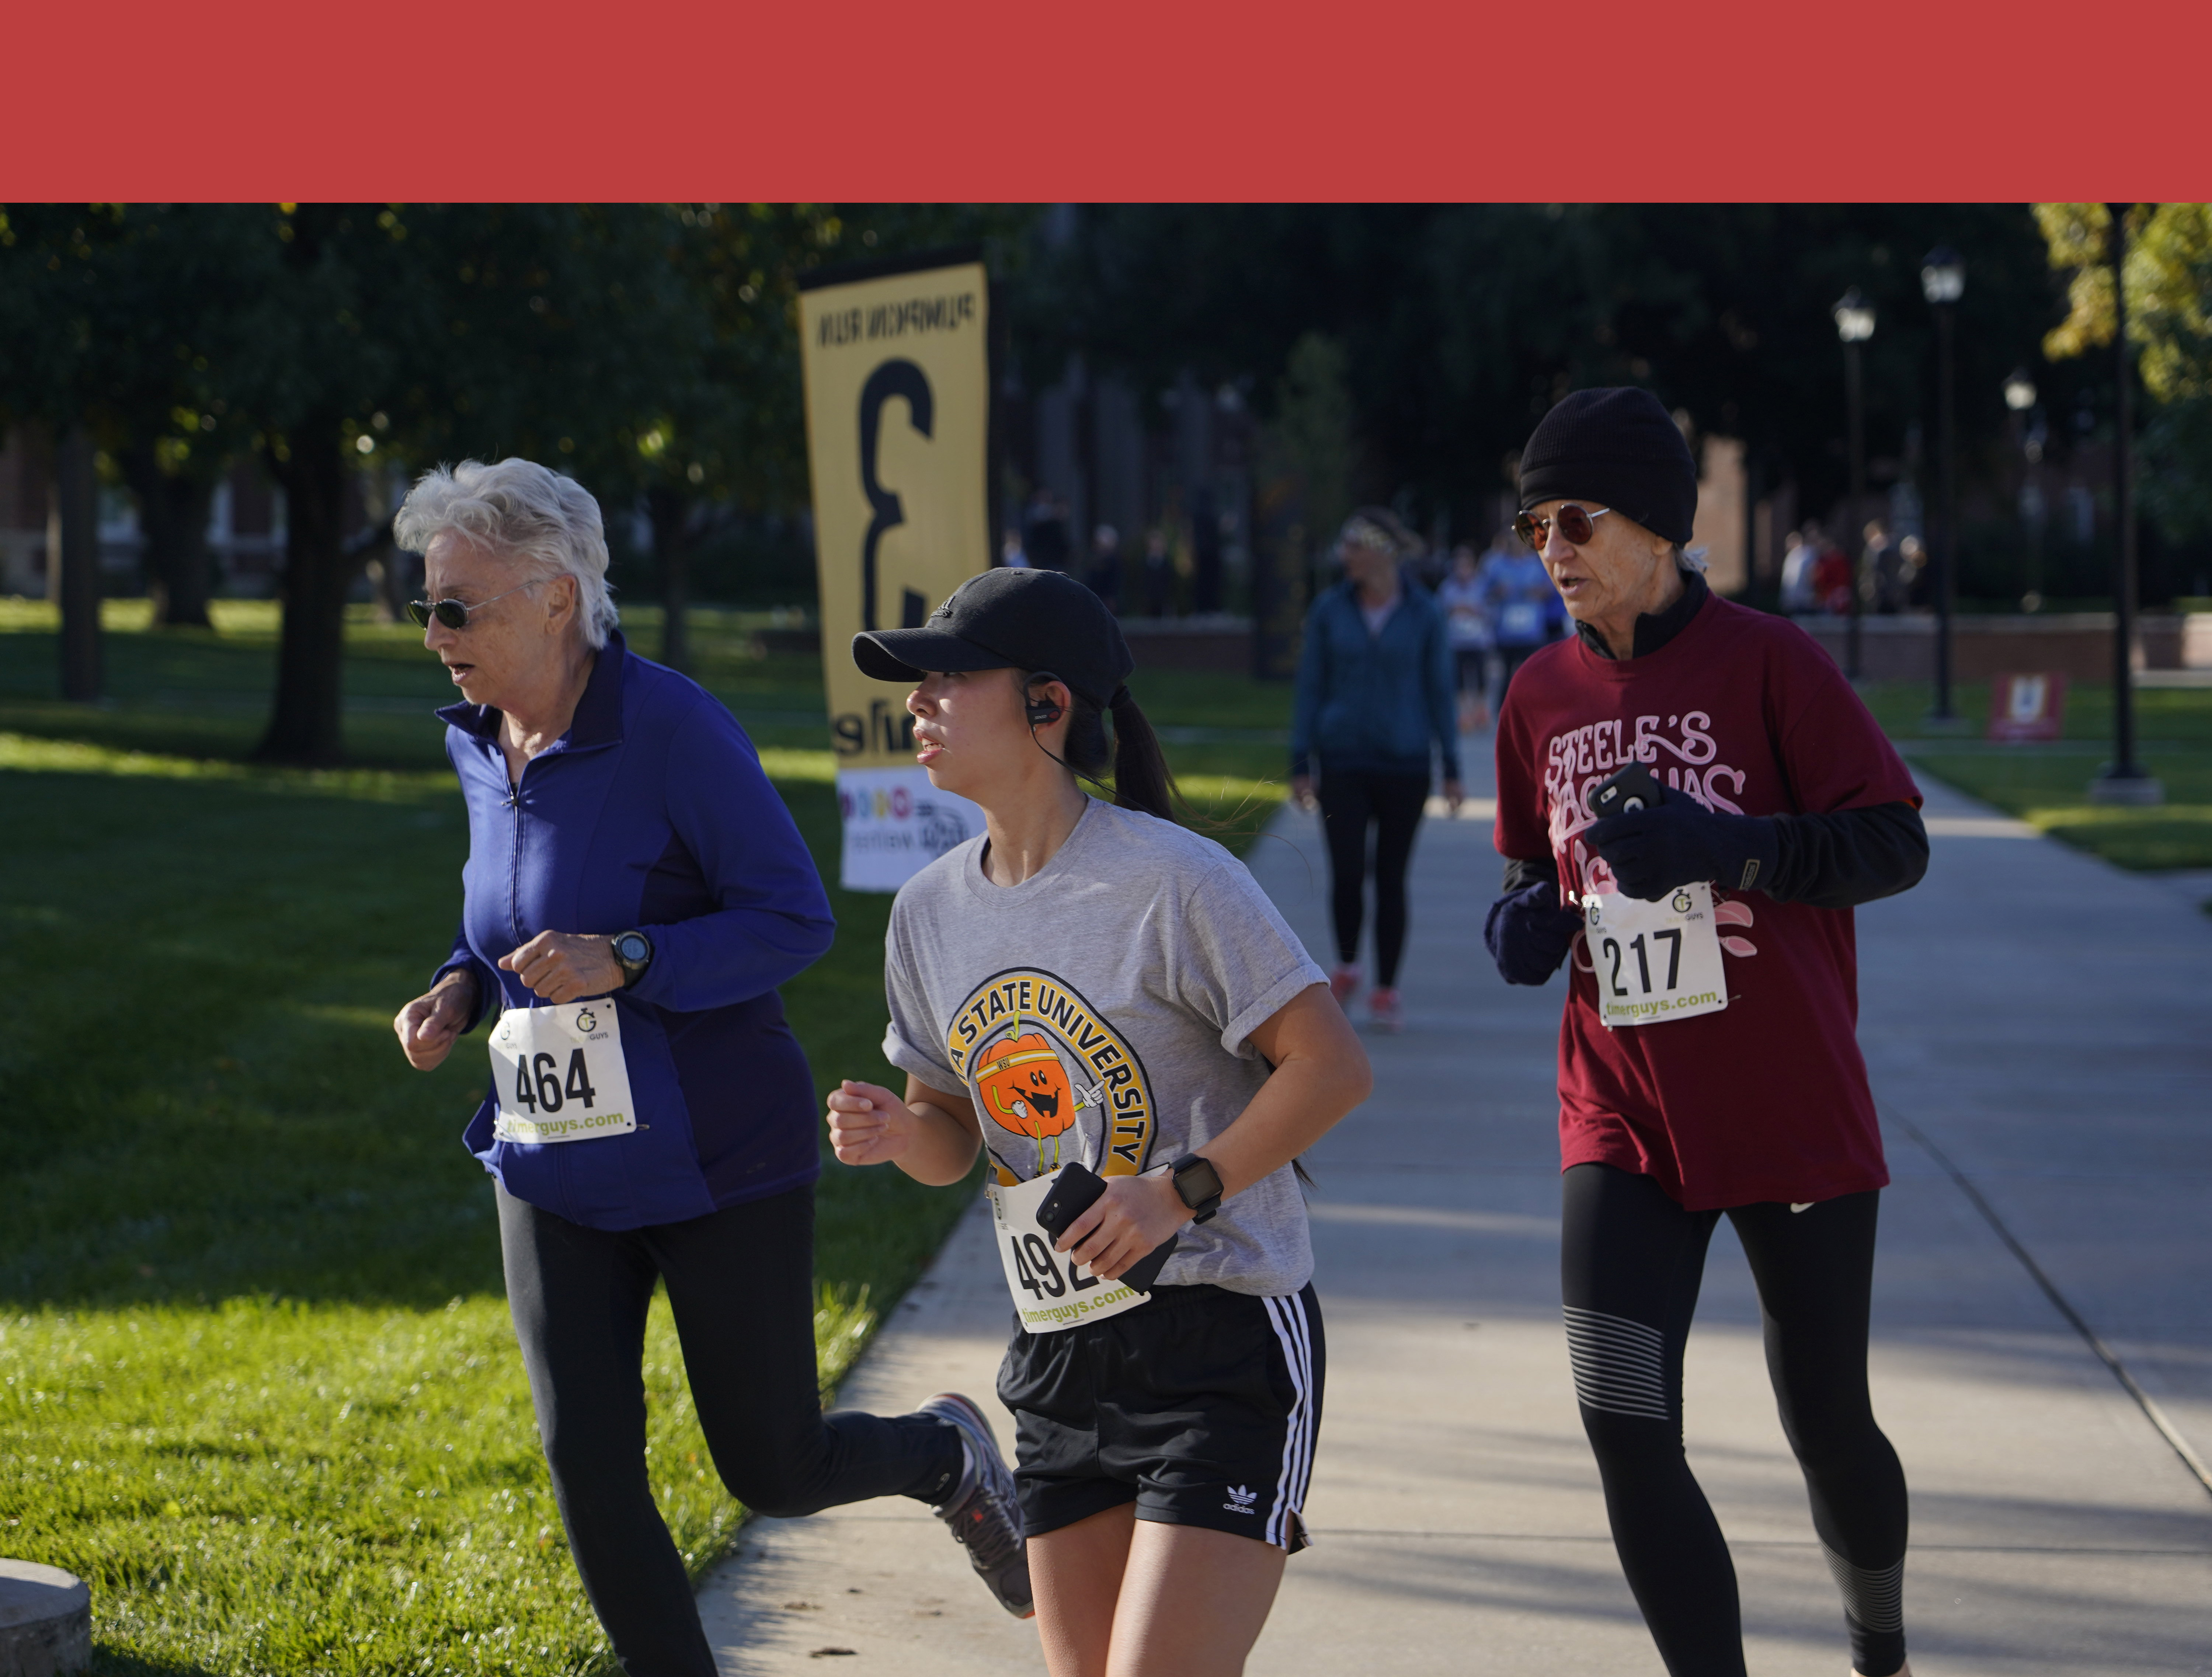 image from the pumpkin run. three runners are in the image, two older people in red and blue and a college student in the pumpkin run shirt in center frame.